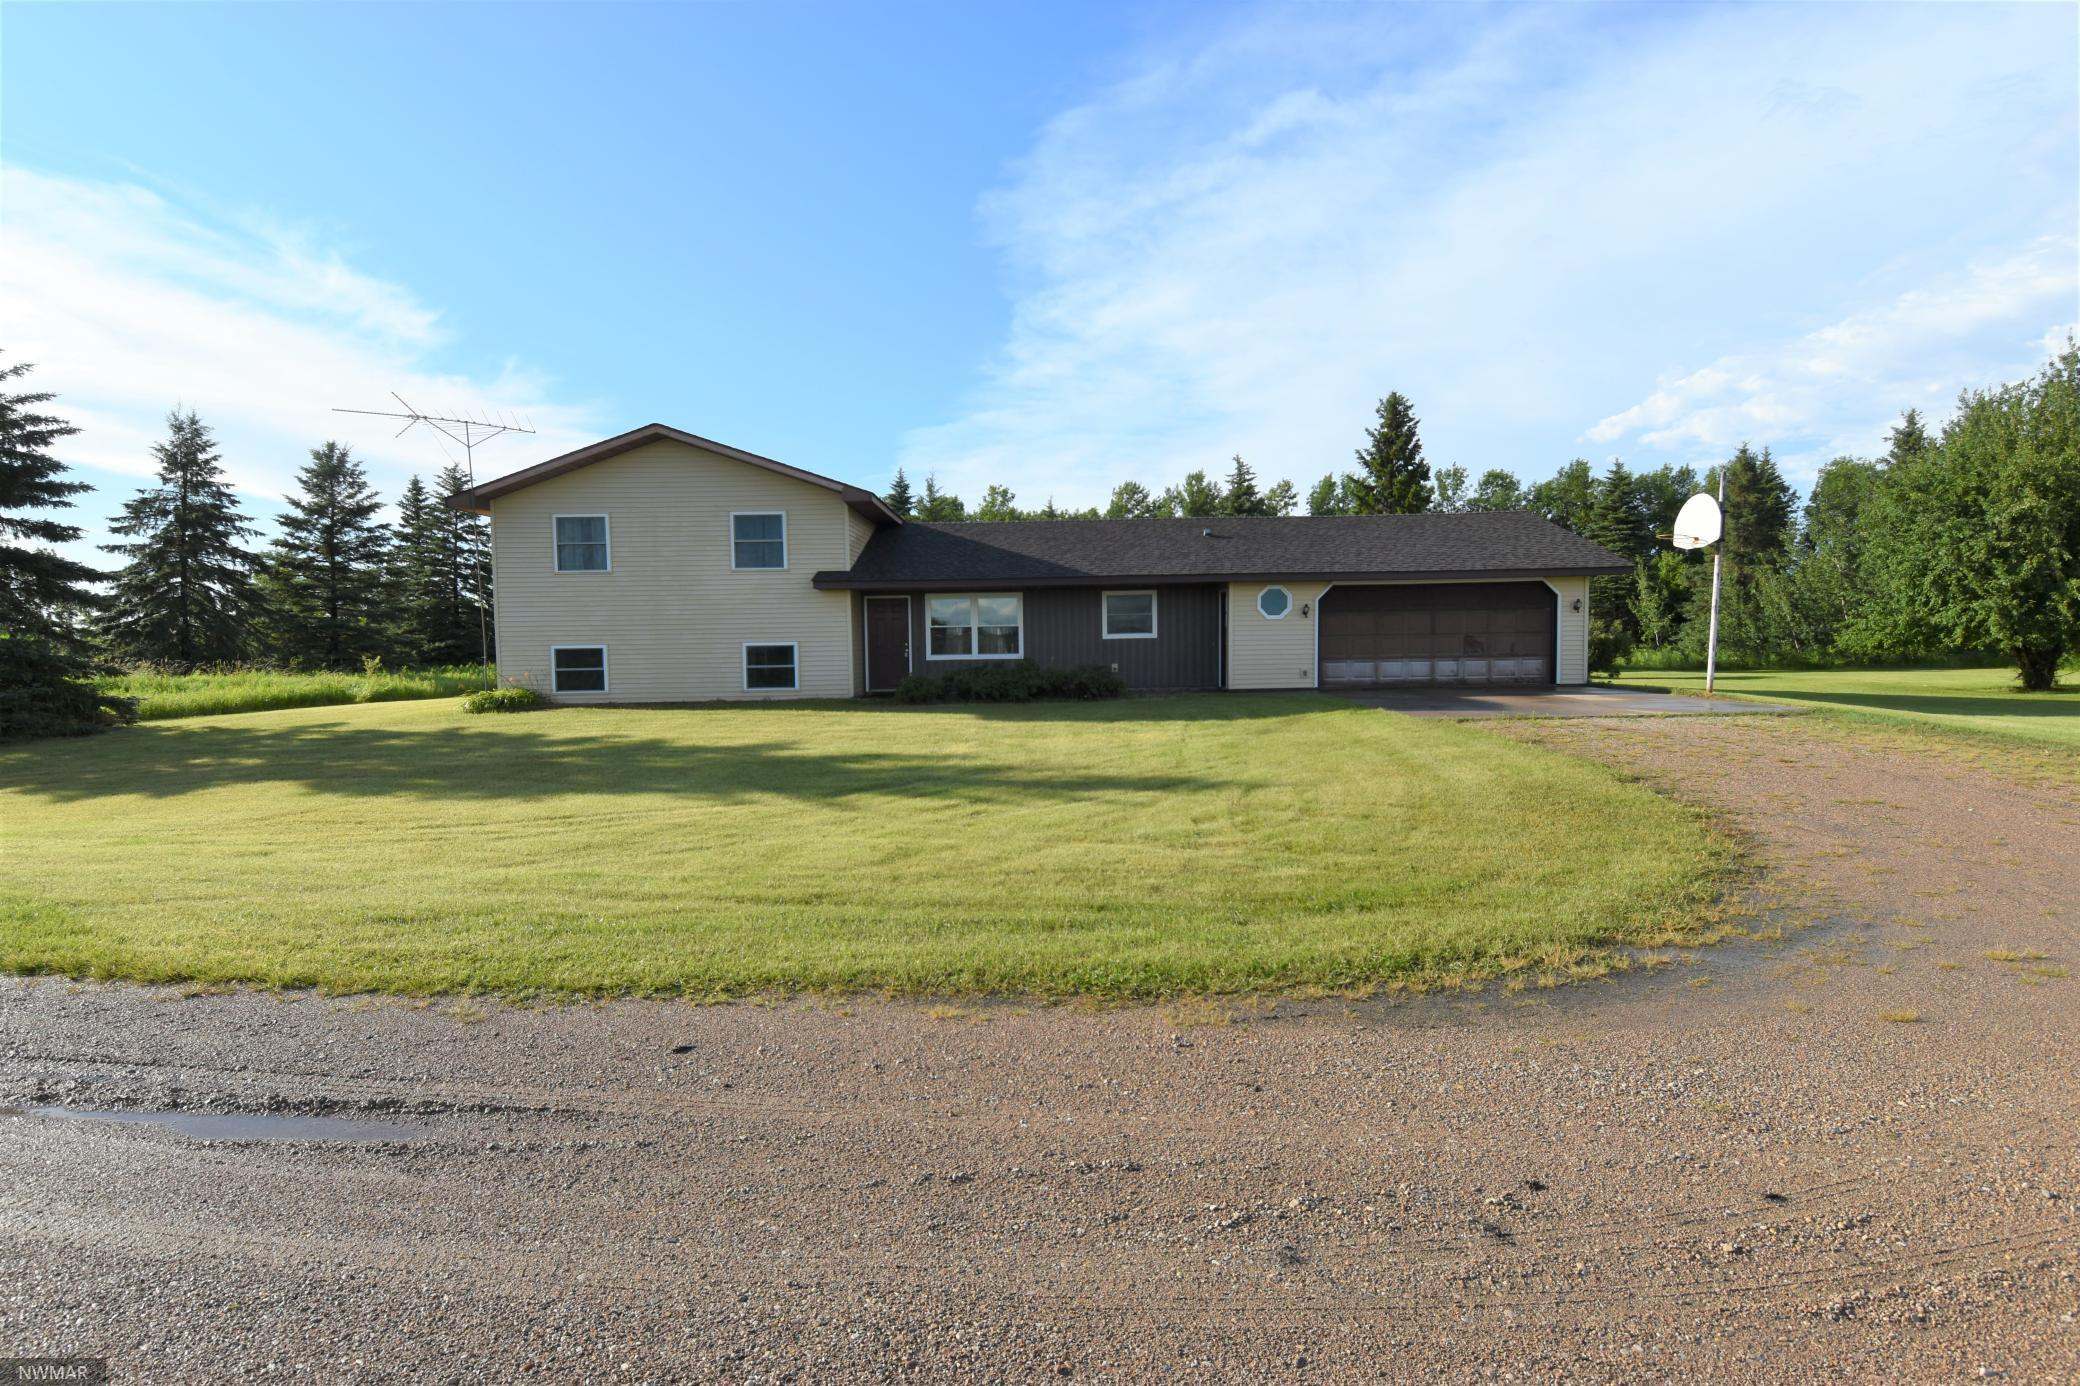 32190 170th NW Property Photo - Marsh Grove Twp, MN real estate listing